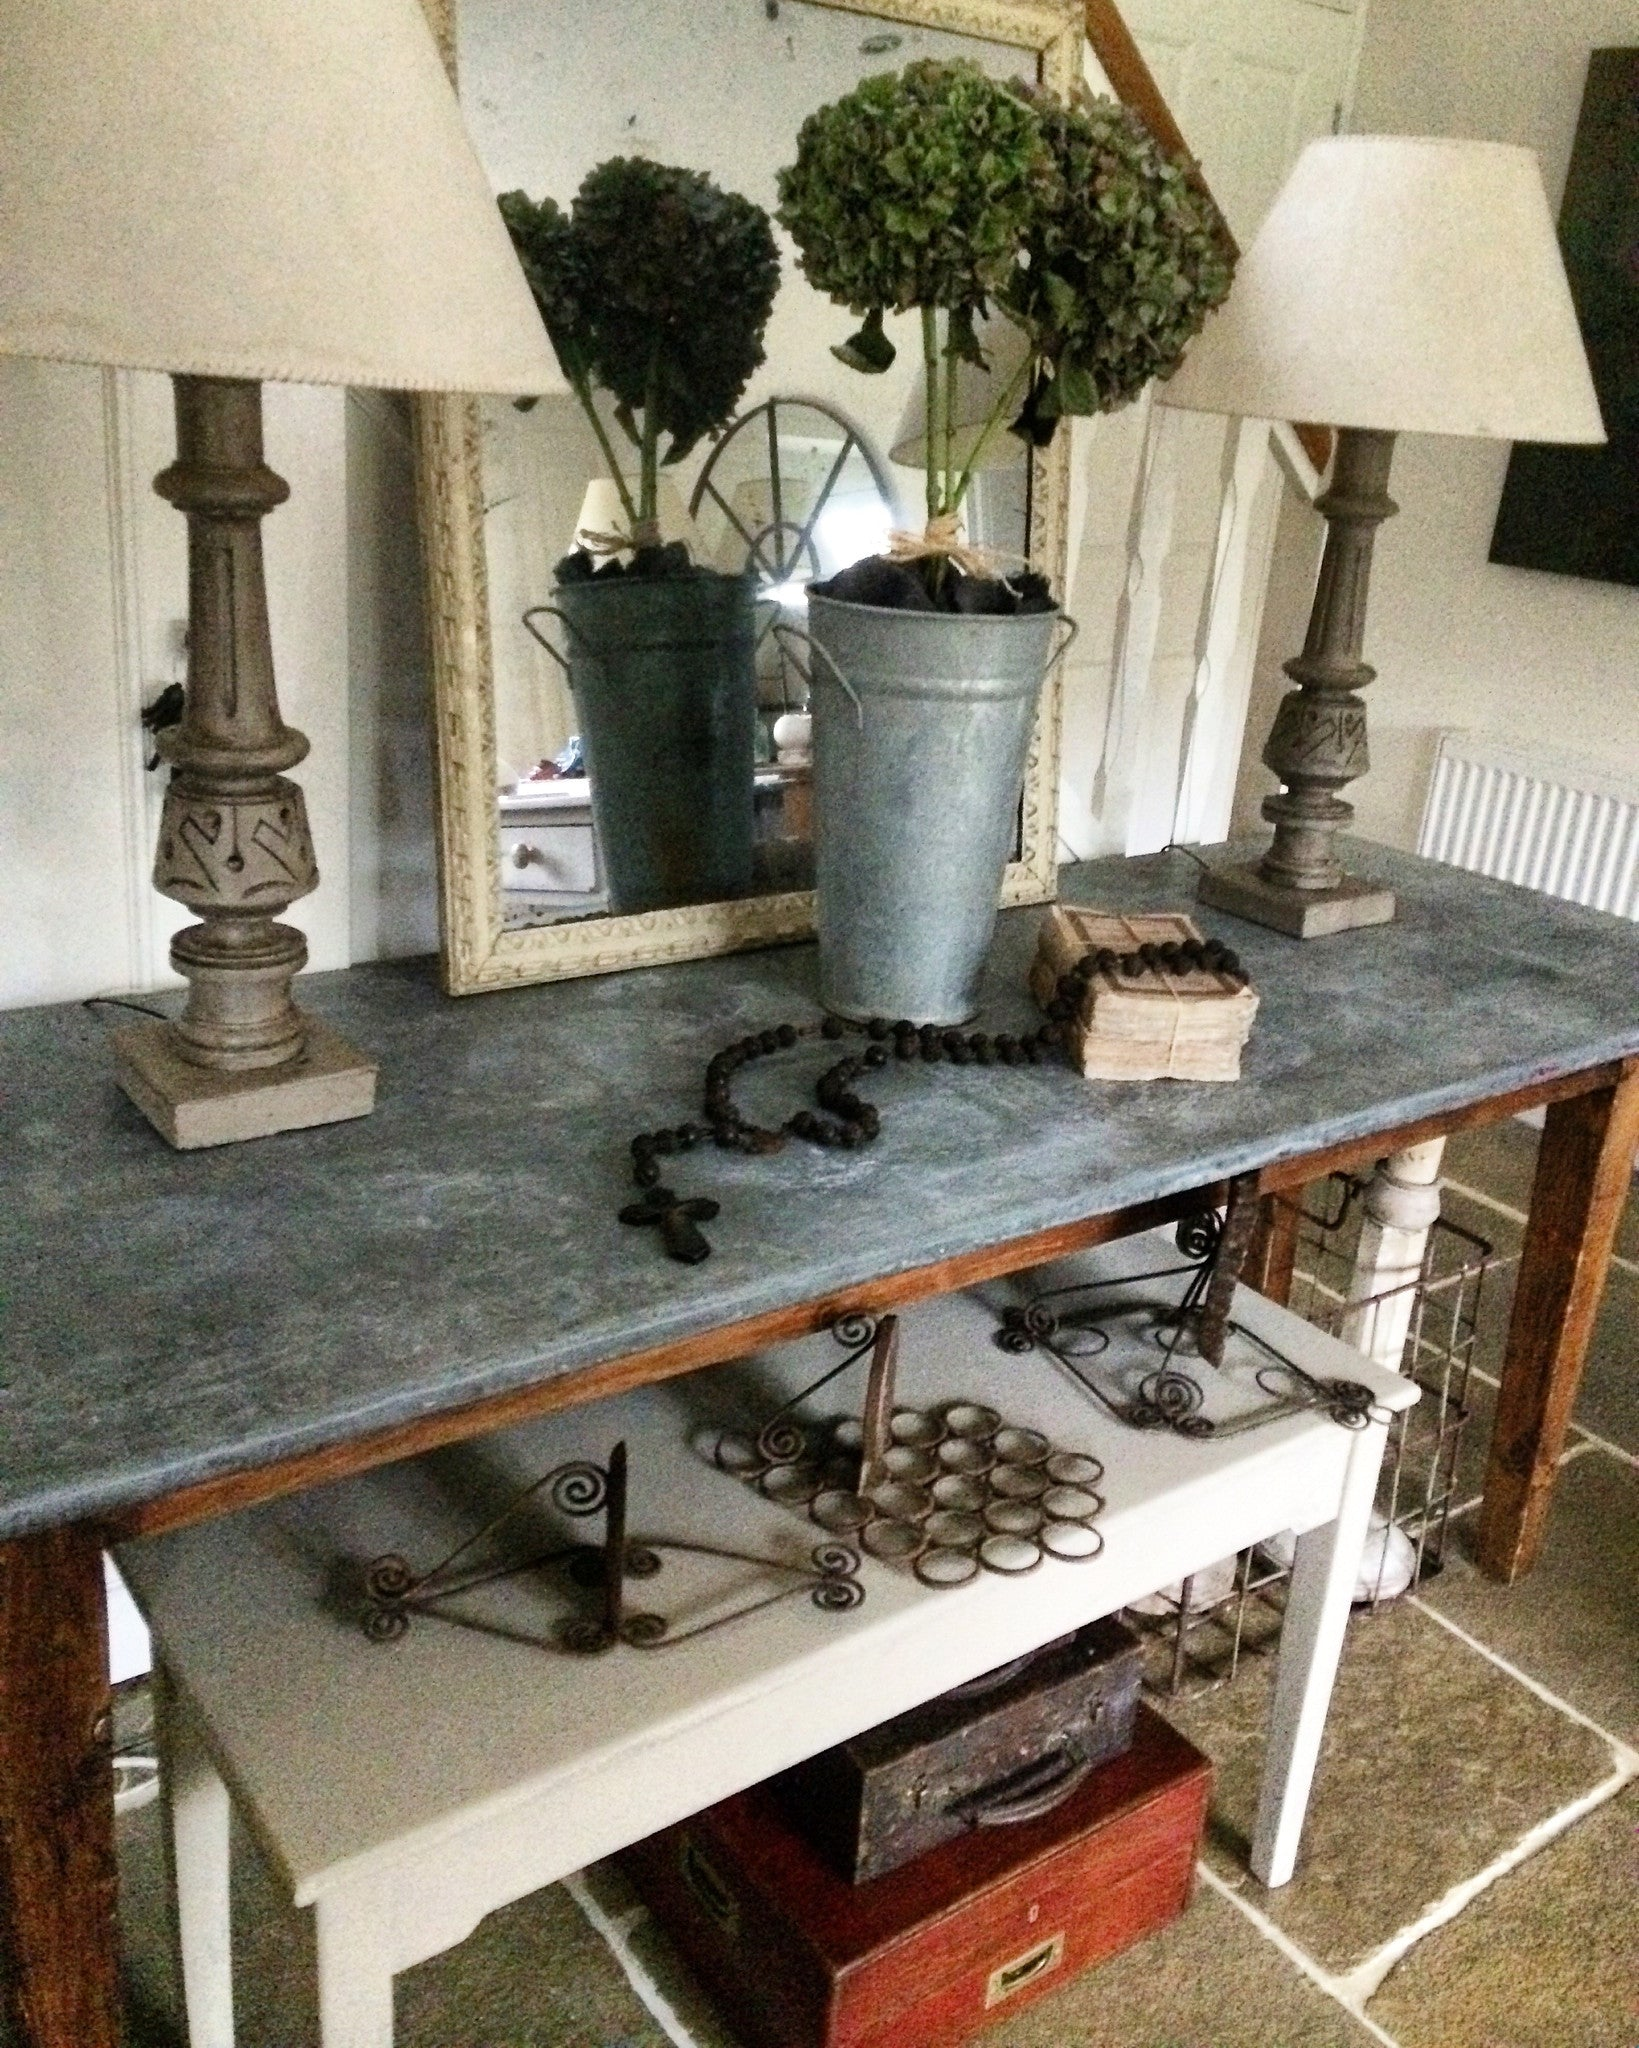 Early 19th century French Scullery Table.